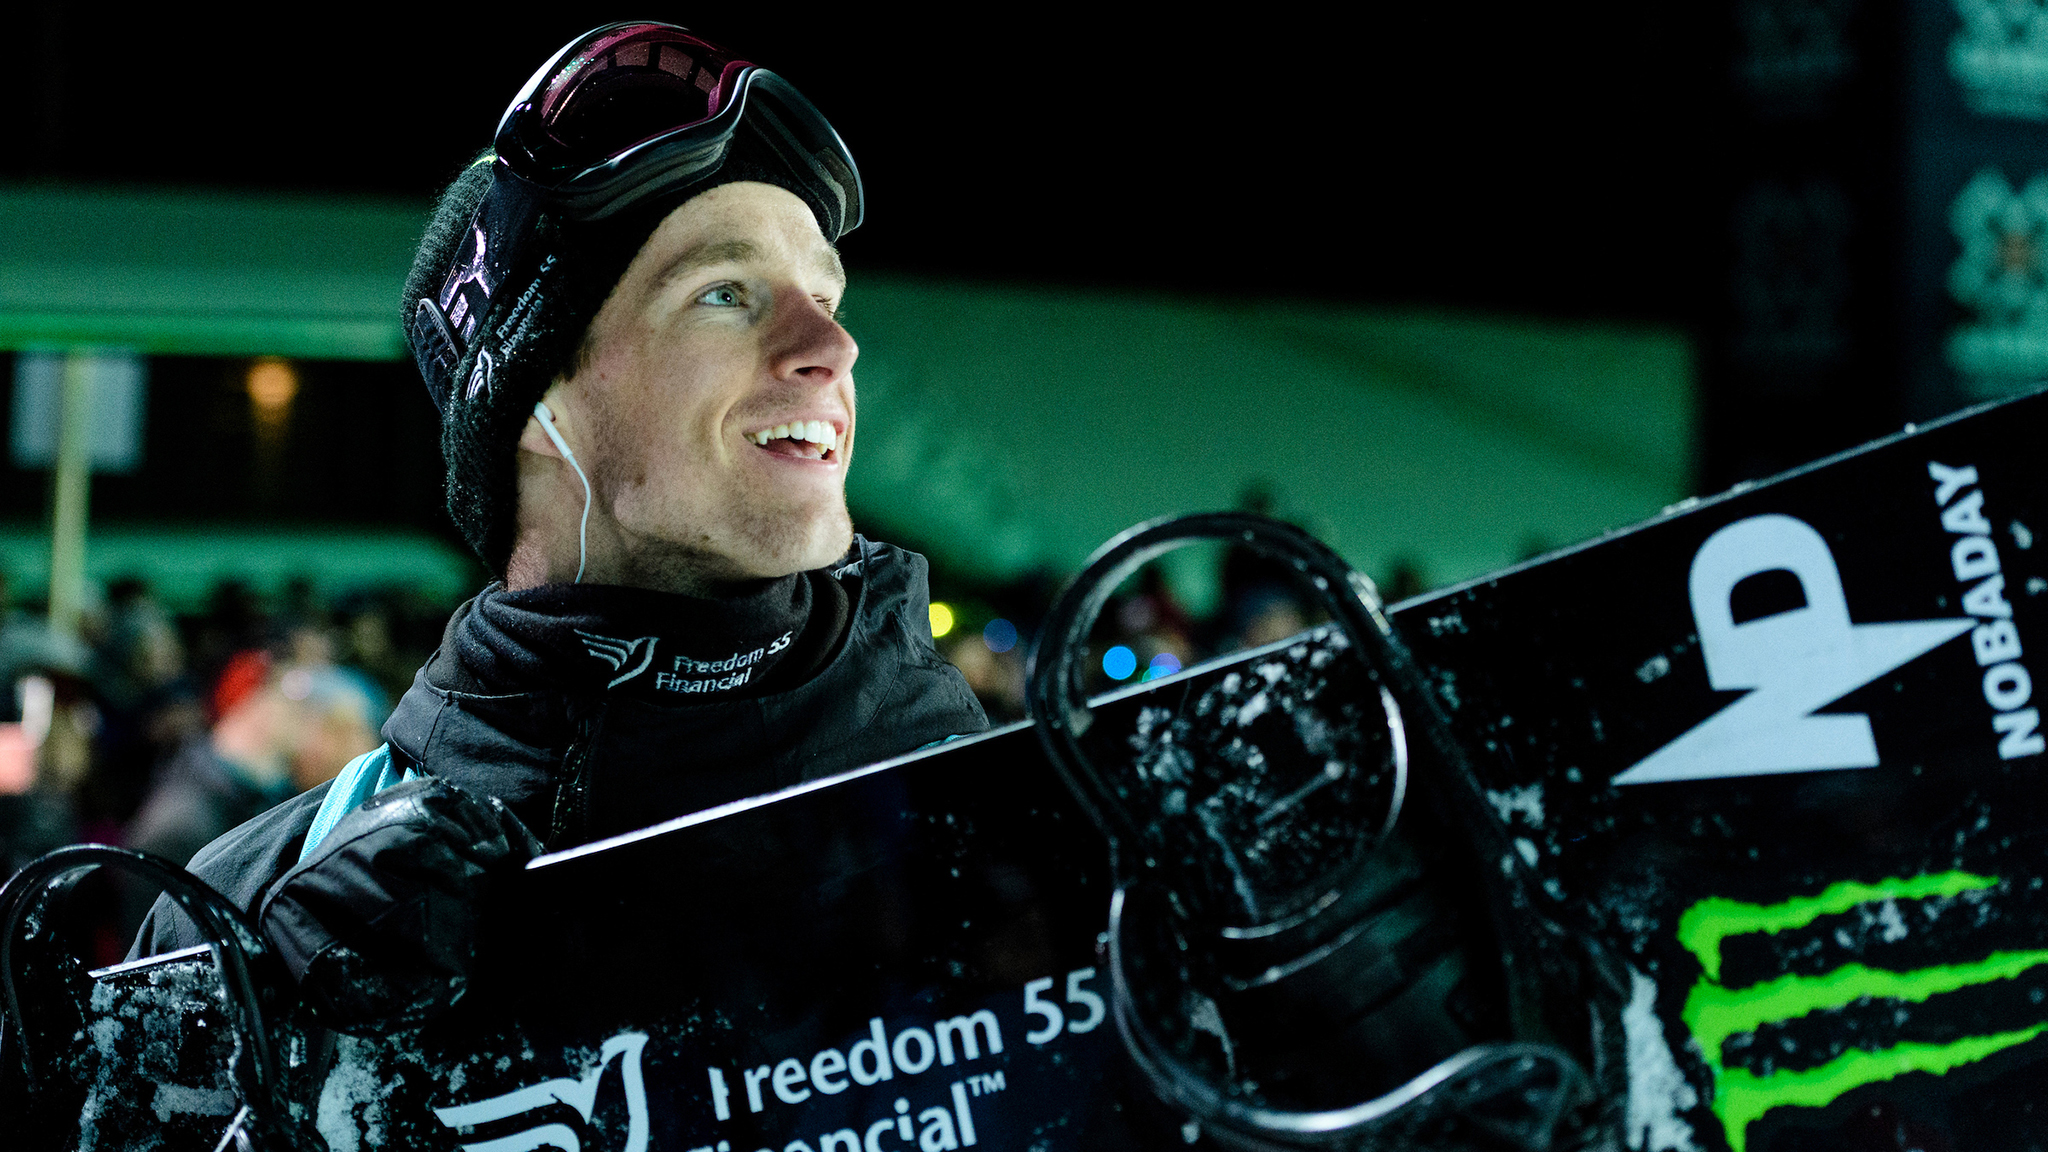 Max Parrot is the most successful X Games Snowboard Big Air athlete in history.